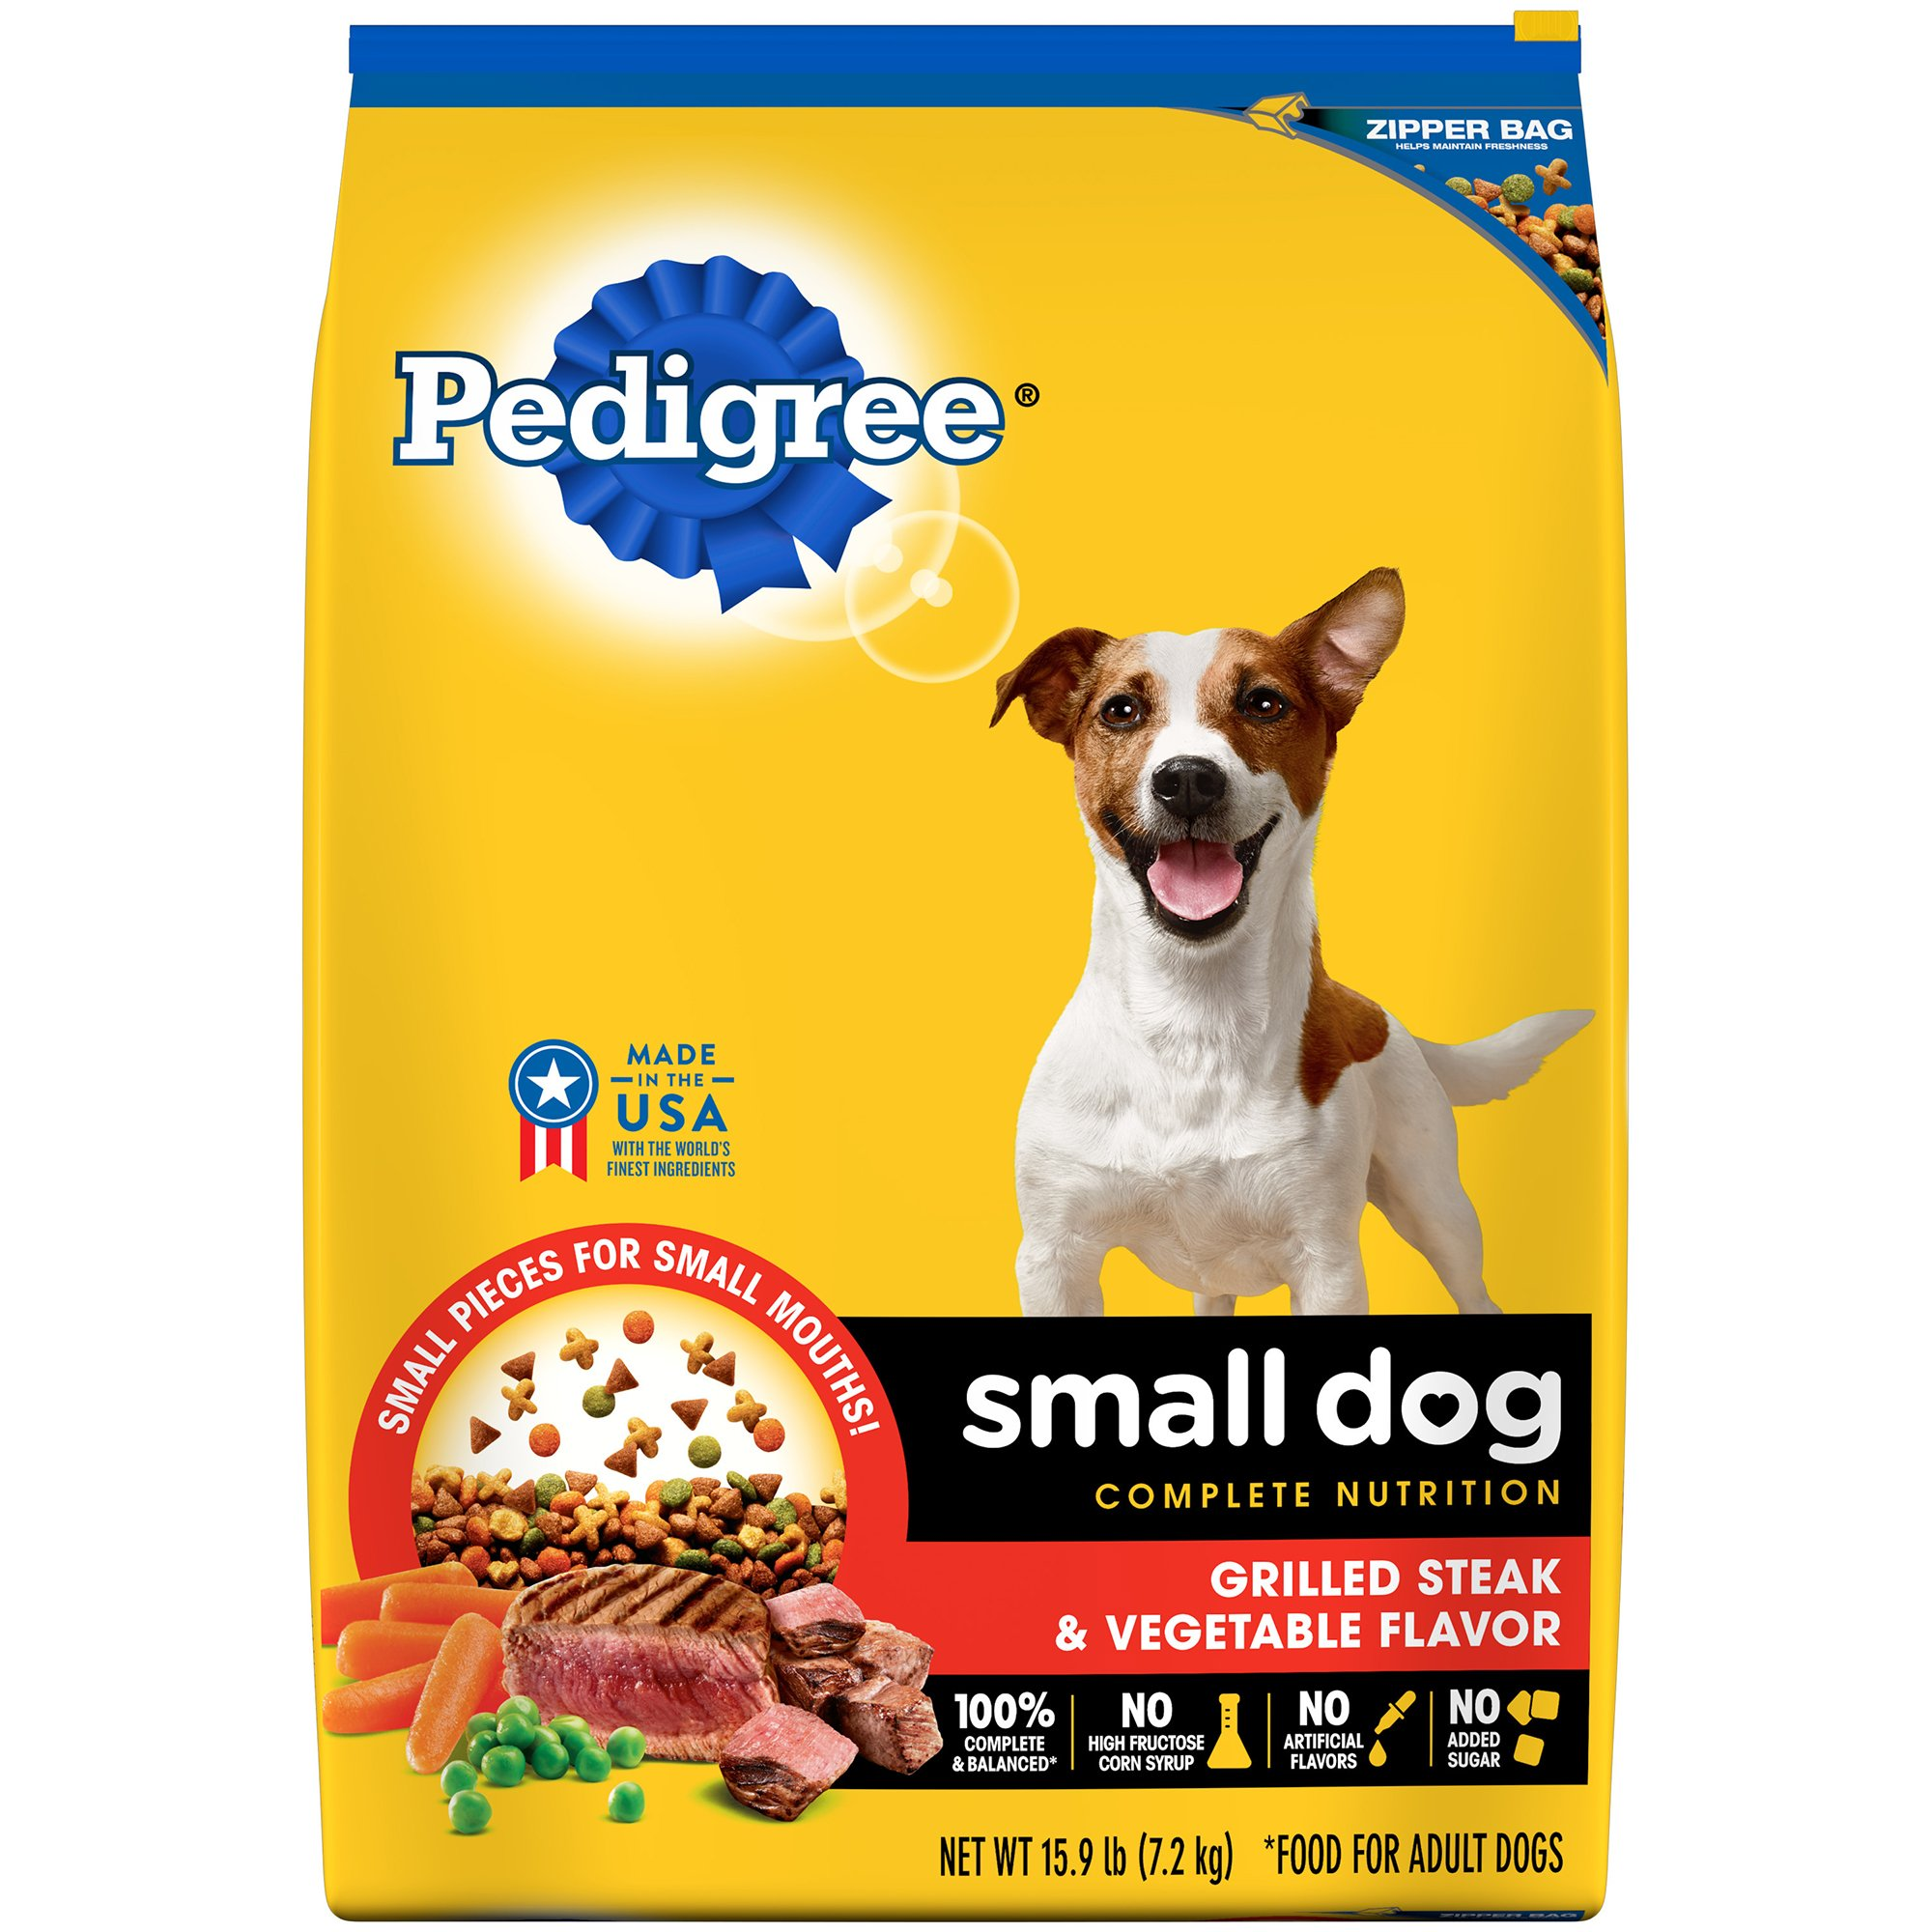 Pedigree Small Dog Complete Nutrition Adult Dry Dog Food Grilled Steak And Vegetable Flavor, 15.9 Lb. Bag by Pedigree